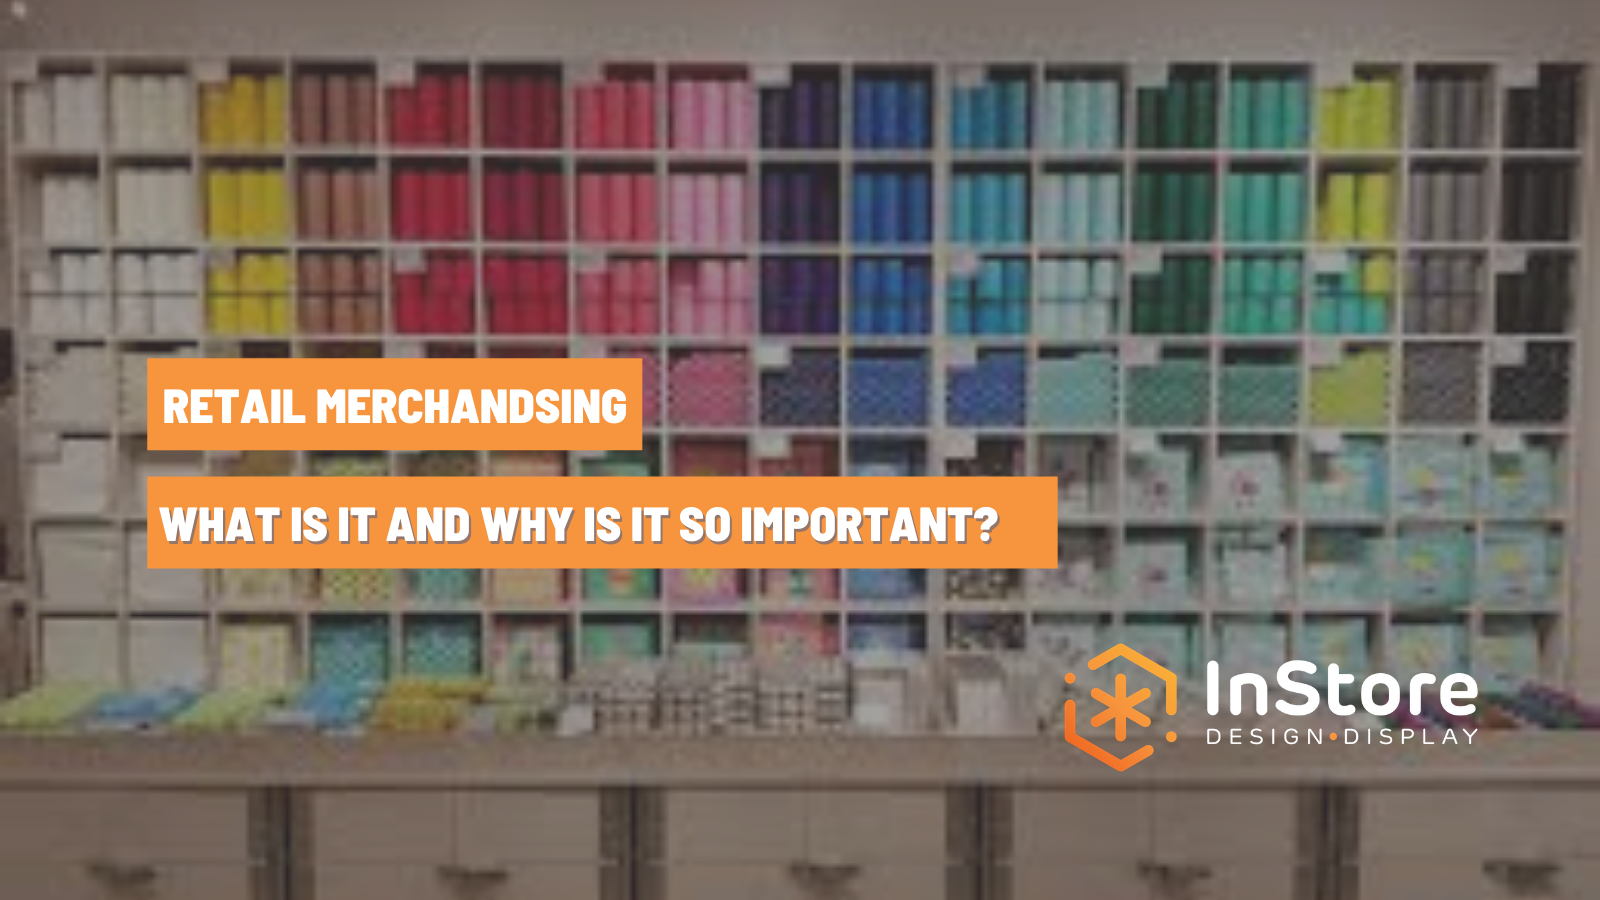 What Are Merchandisers and Why Are They Important for Retailers?